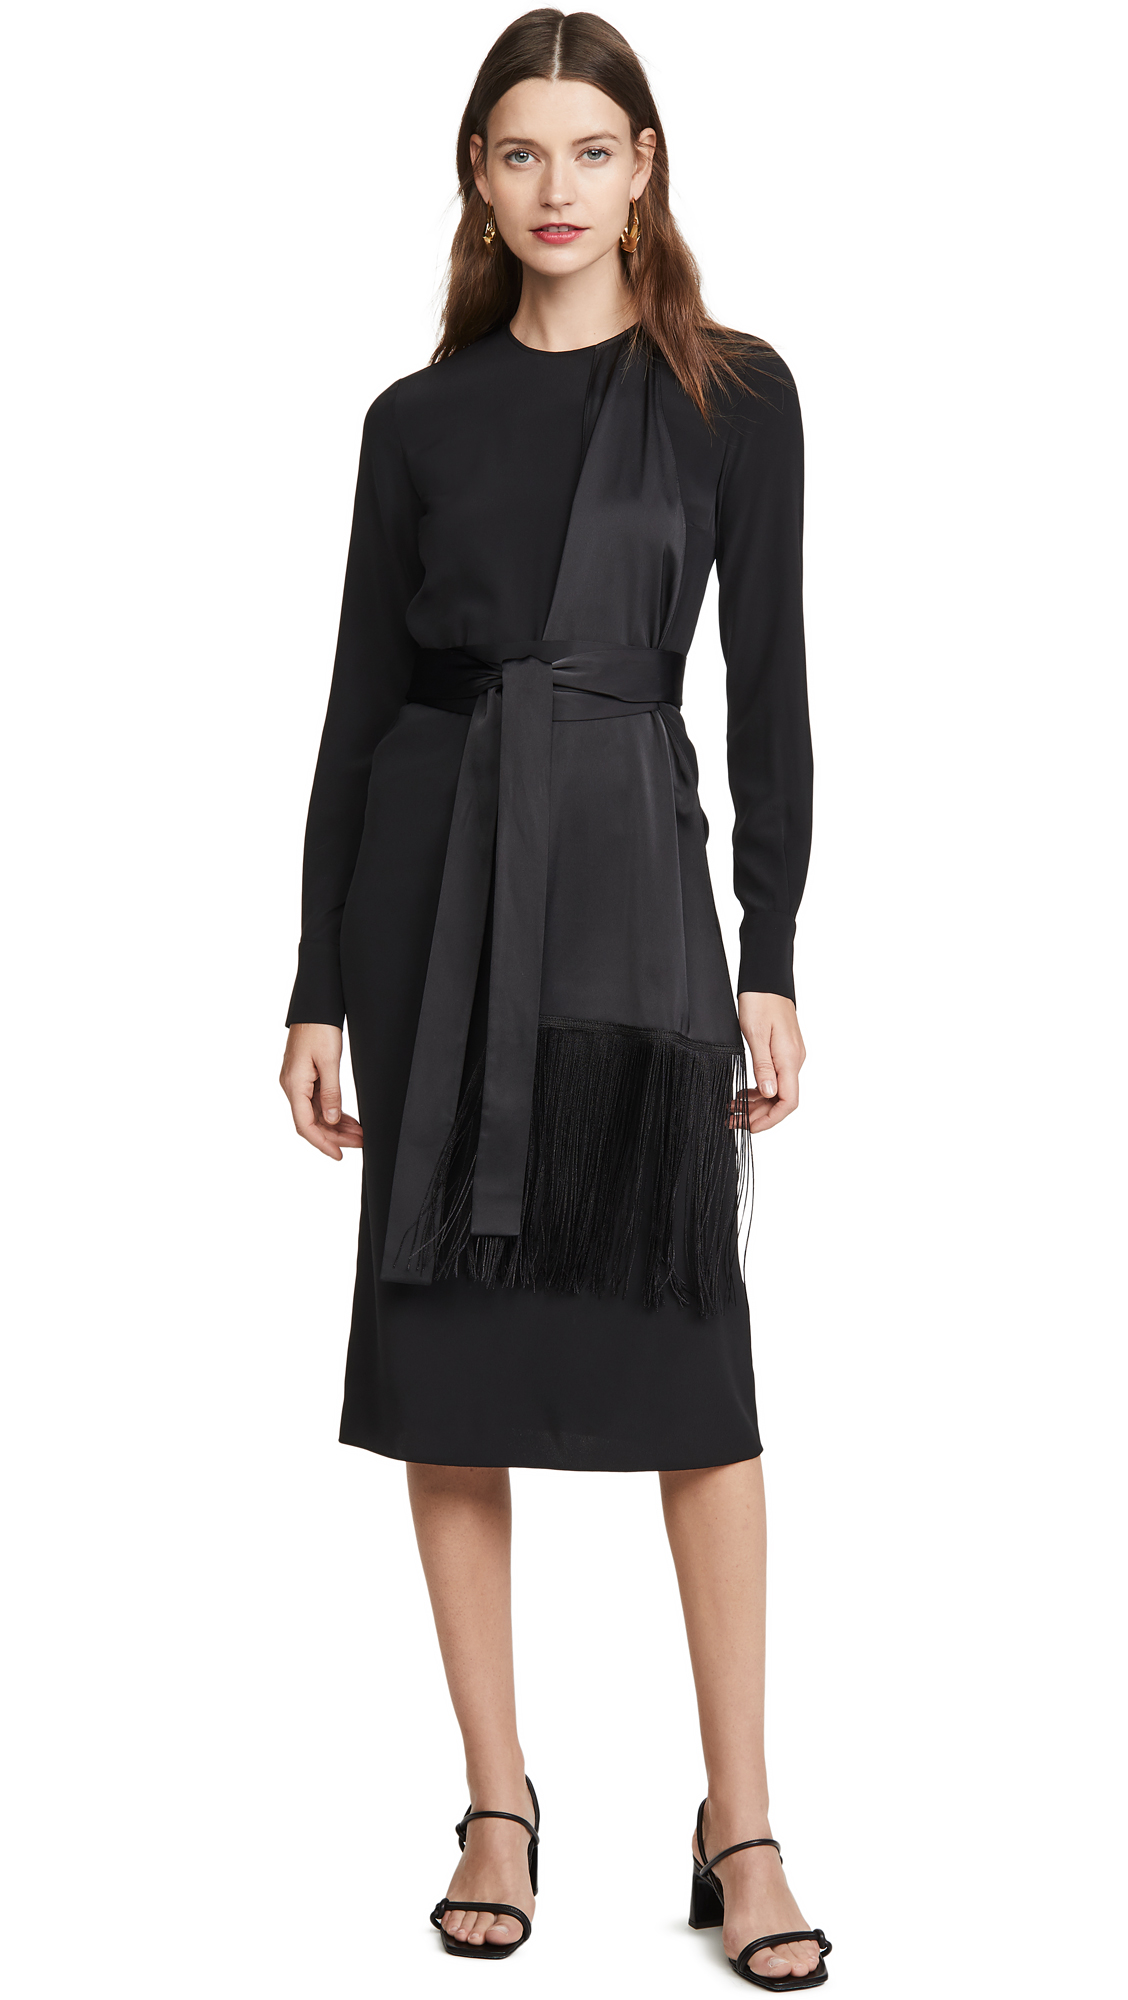 Victoria Victoria Beckham Fringe Scarf Dress - 60% Off Sale